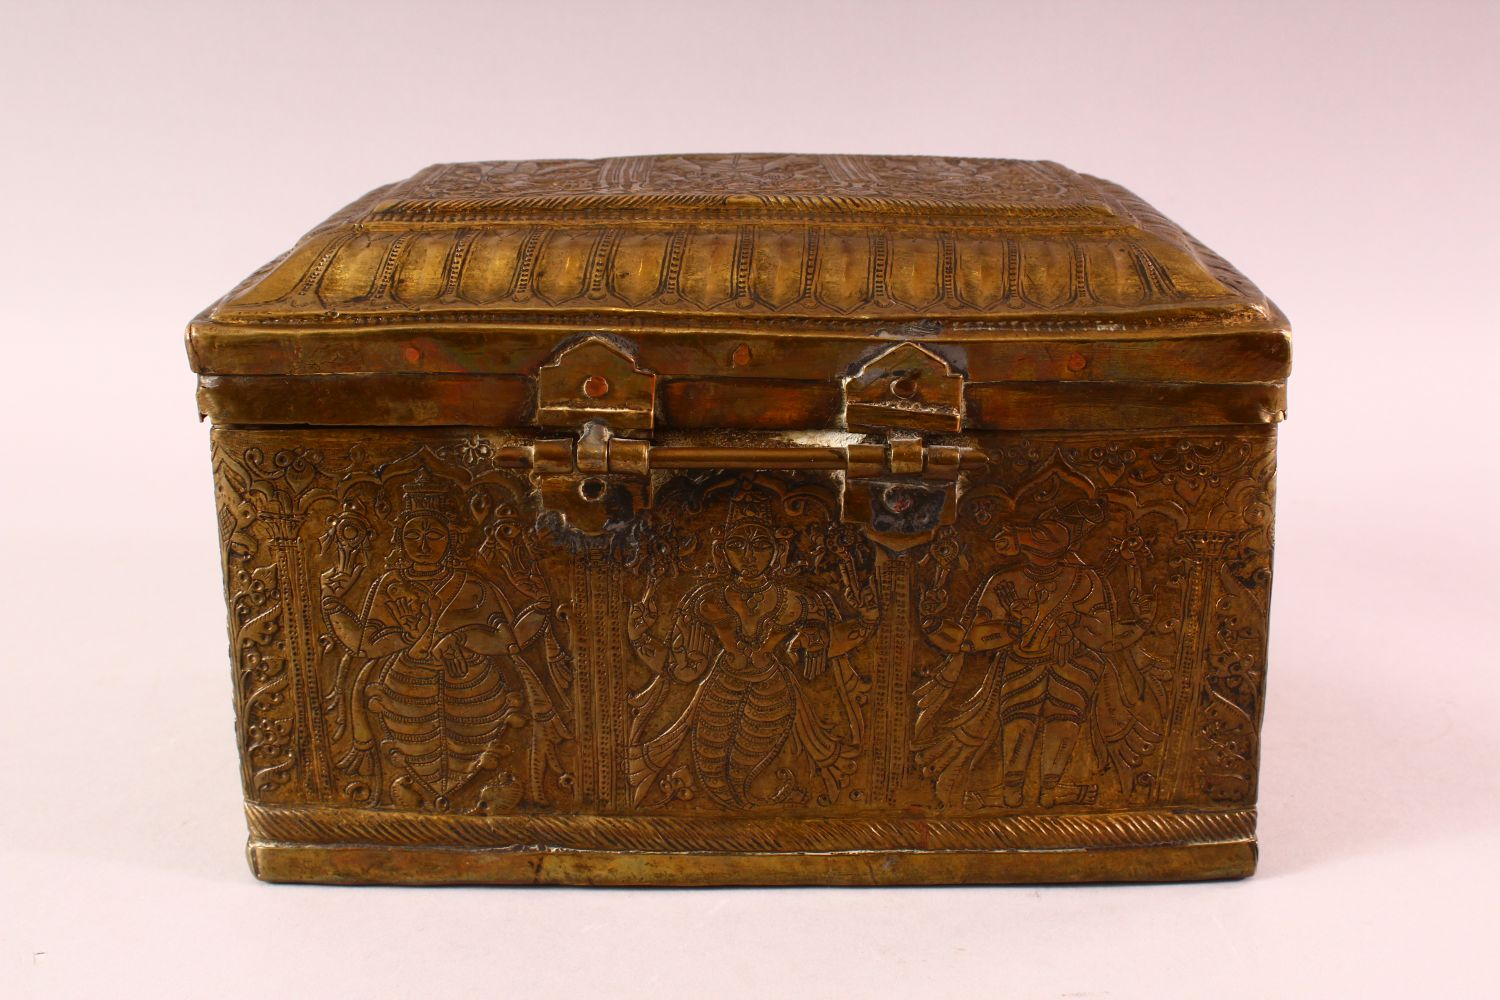 A FINE 18TH CENTURY SOUTH INDIAN ENGRAVED BRASS CASKET depicting Hindu gods, 26cm long, 16cm high, - Image 4 of 6